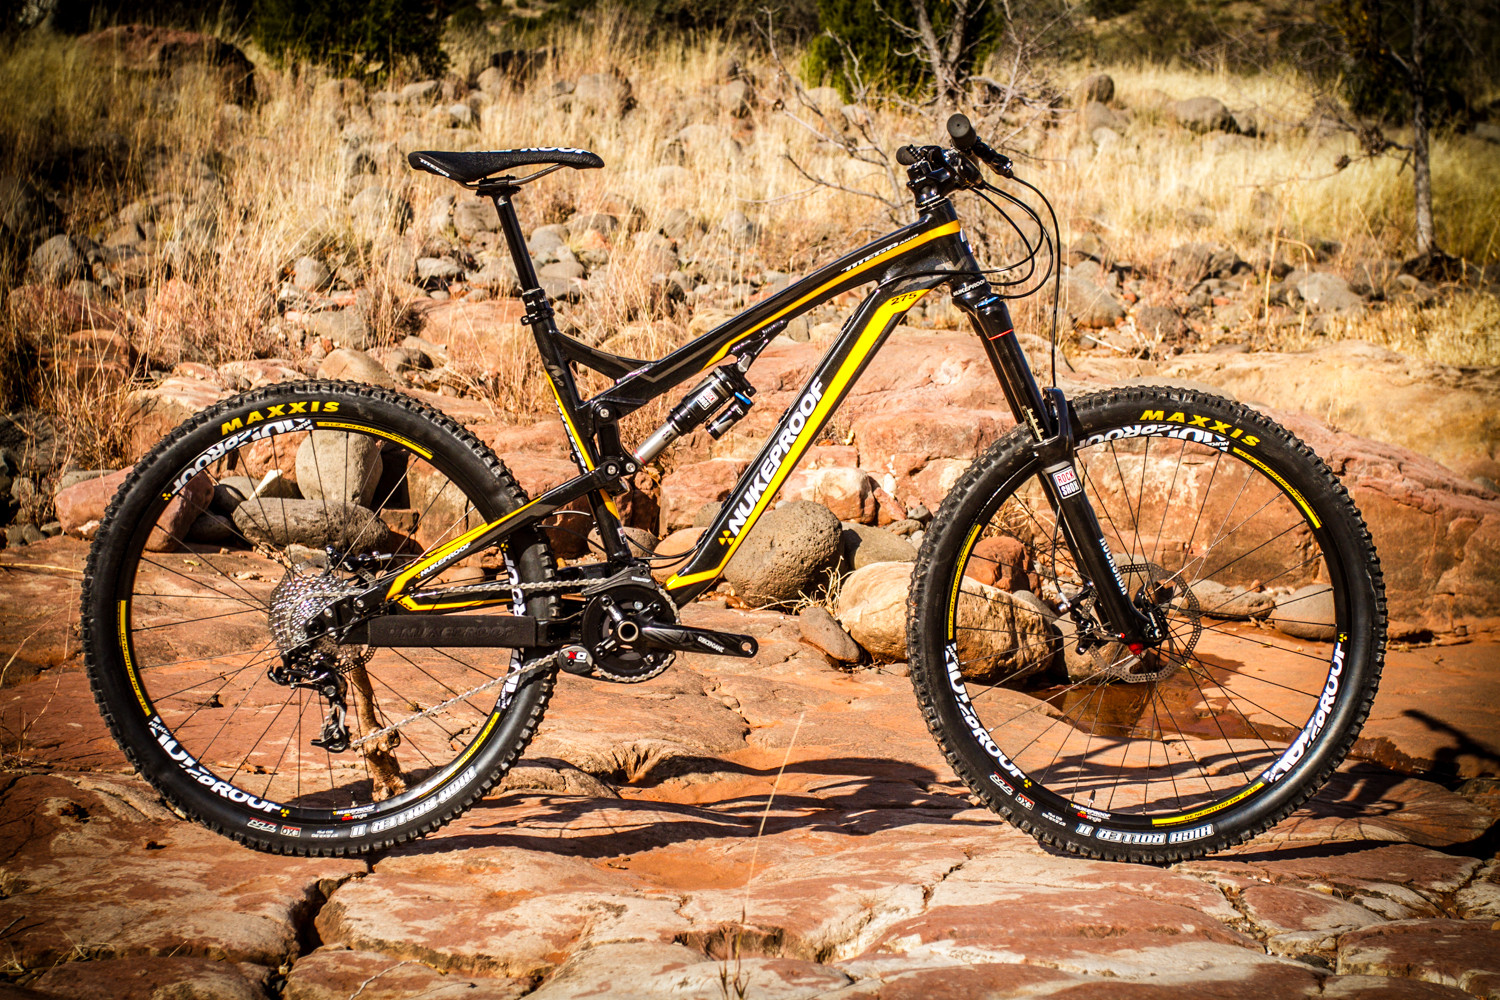 2014 Nukeproof Mega AM 275 Pro - 2014 Test Sessions: Nukeproof Mega AM 275 Pro - Mountain Biking Pictures - Vital MTB